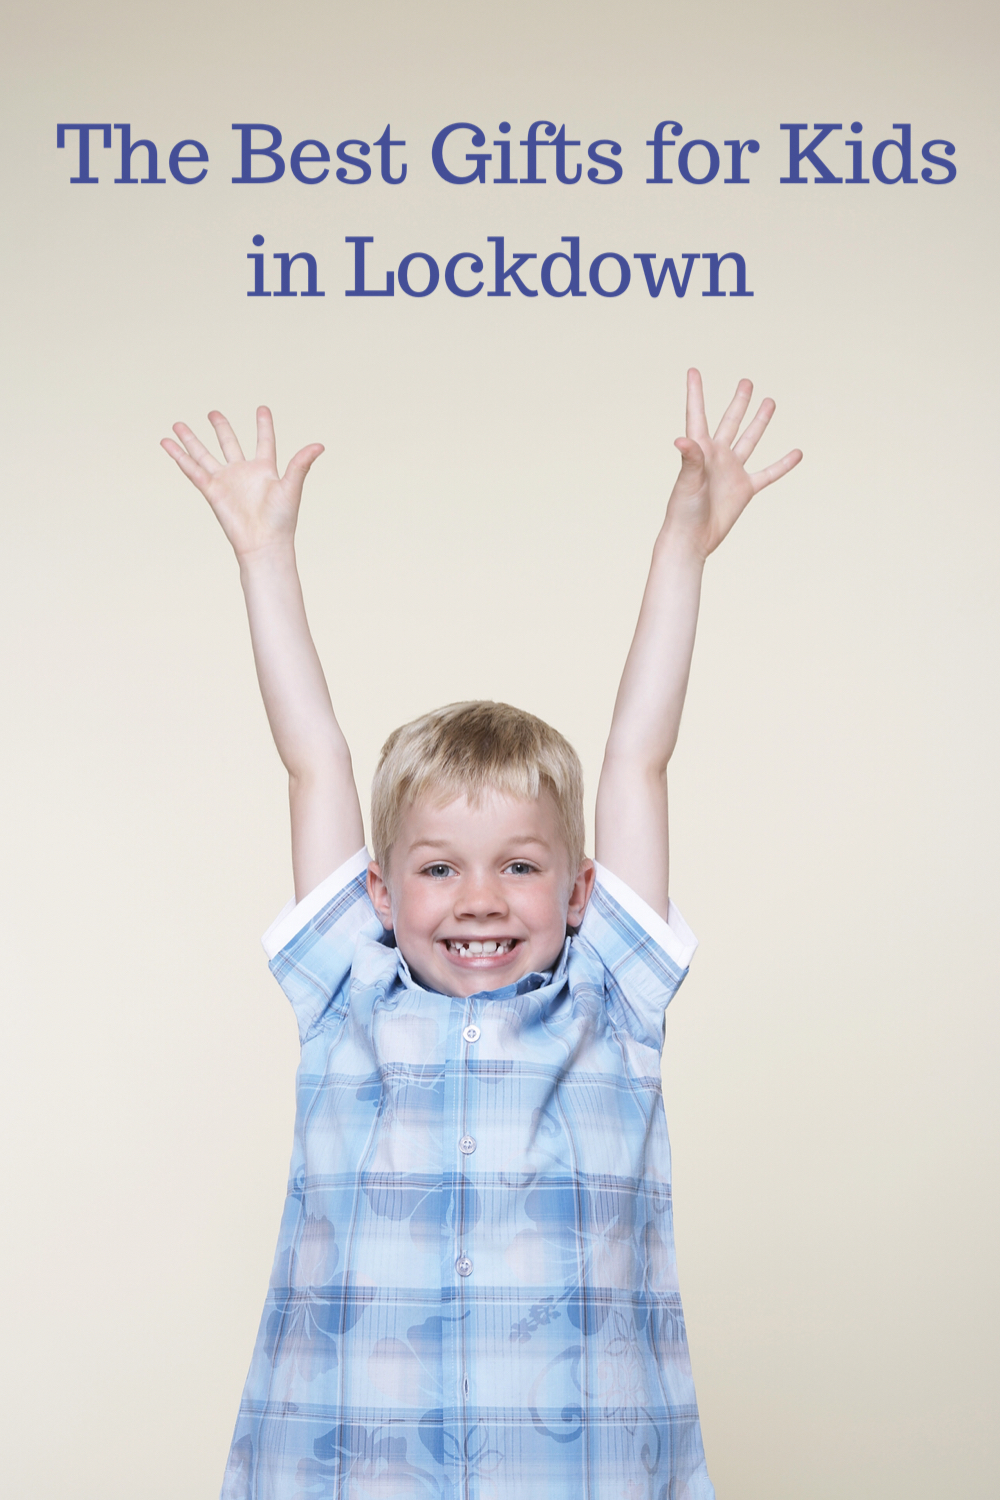 The a best gifts for kids in lockdown